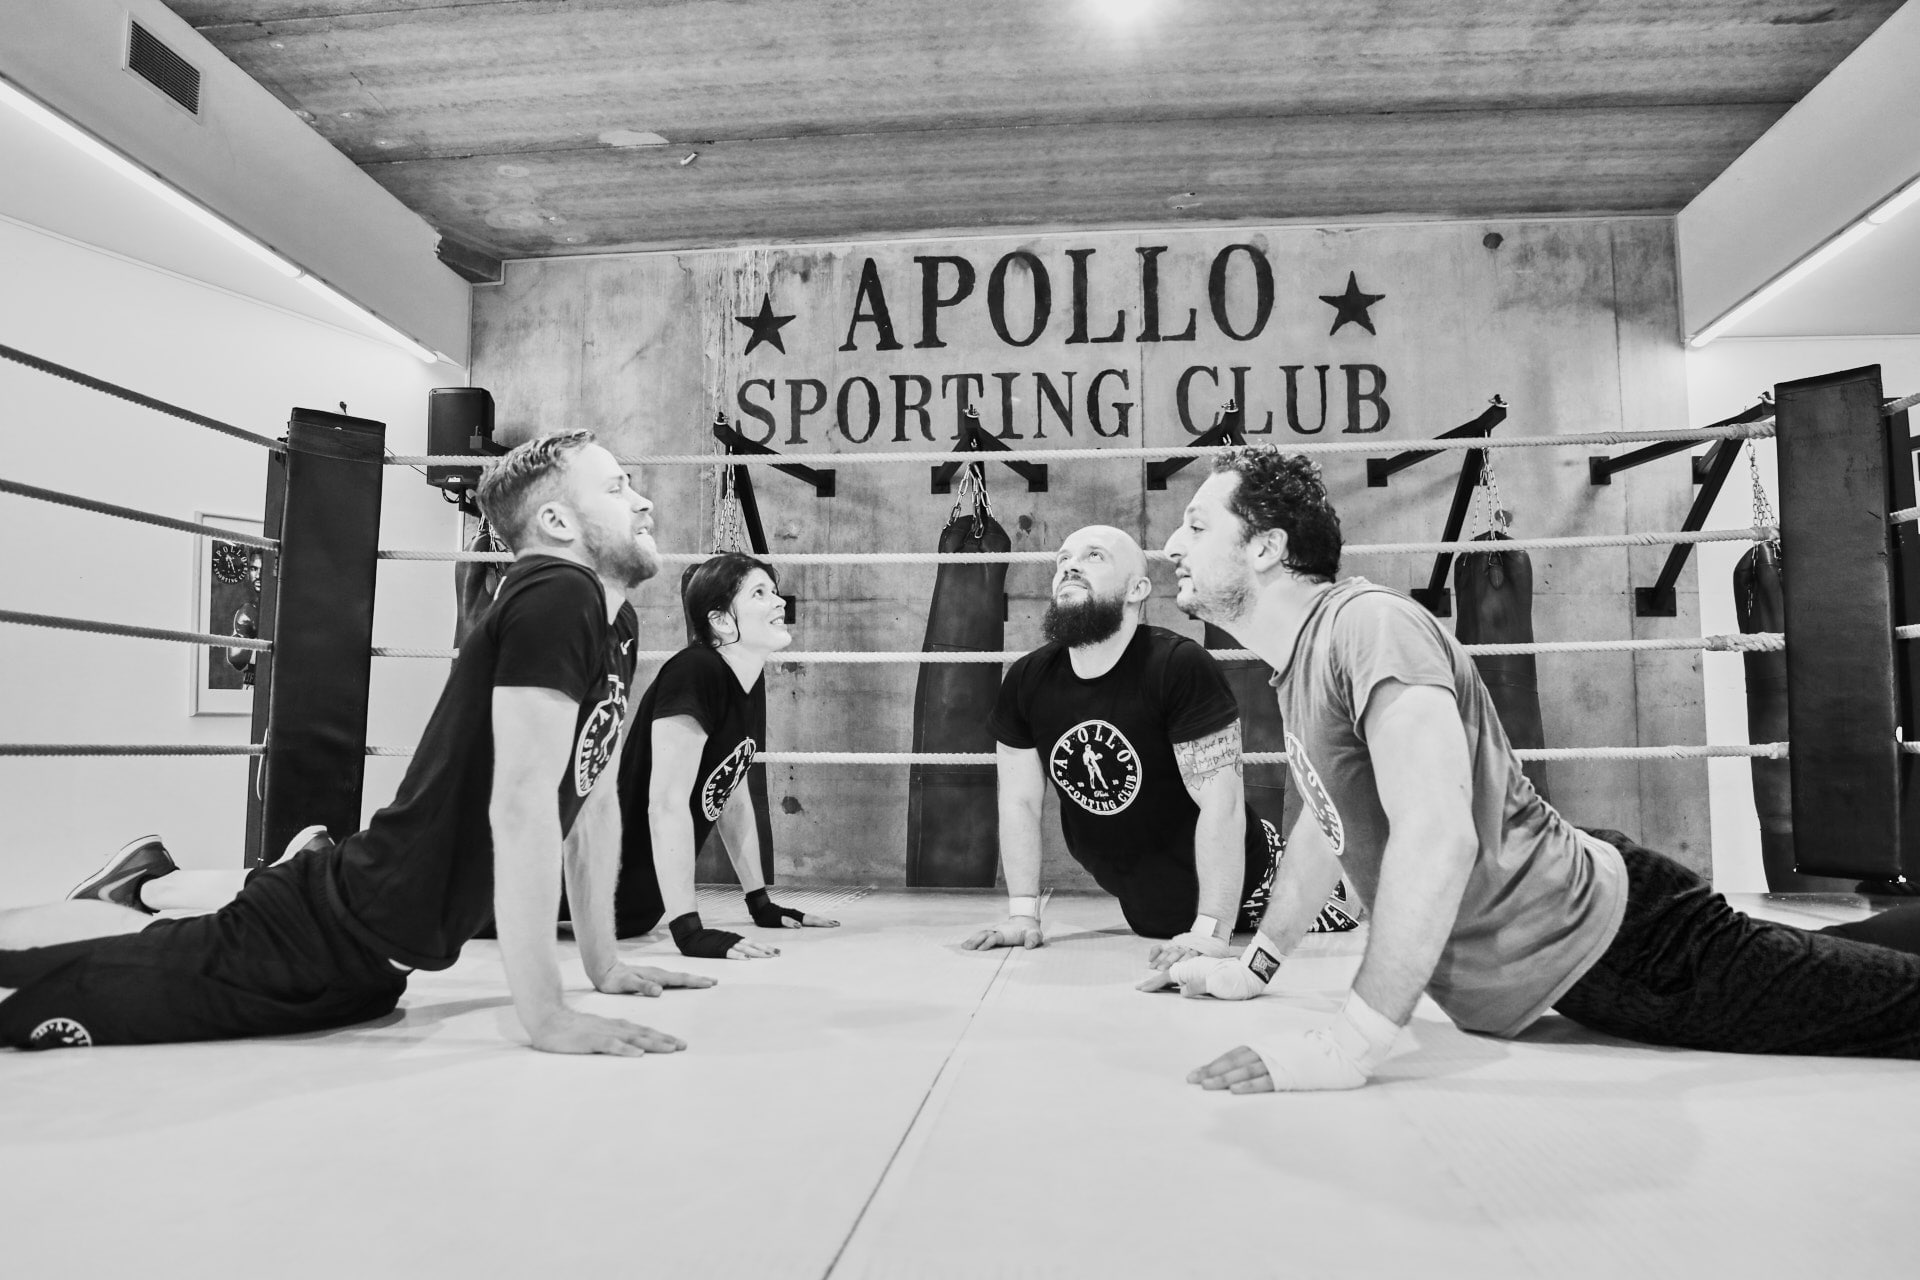 Cours de boxe à Apollo Sporting Club Paris 19ème Rosa Parks